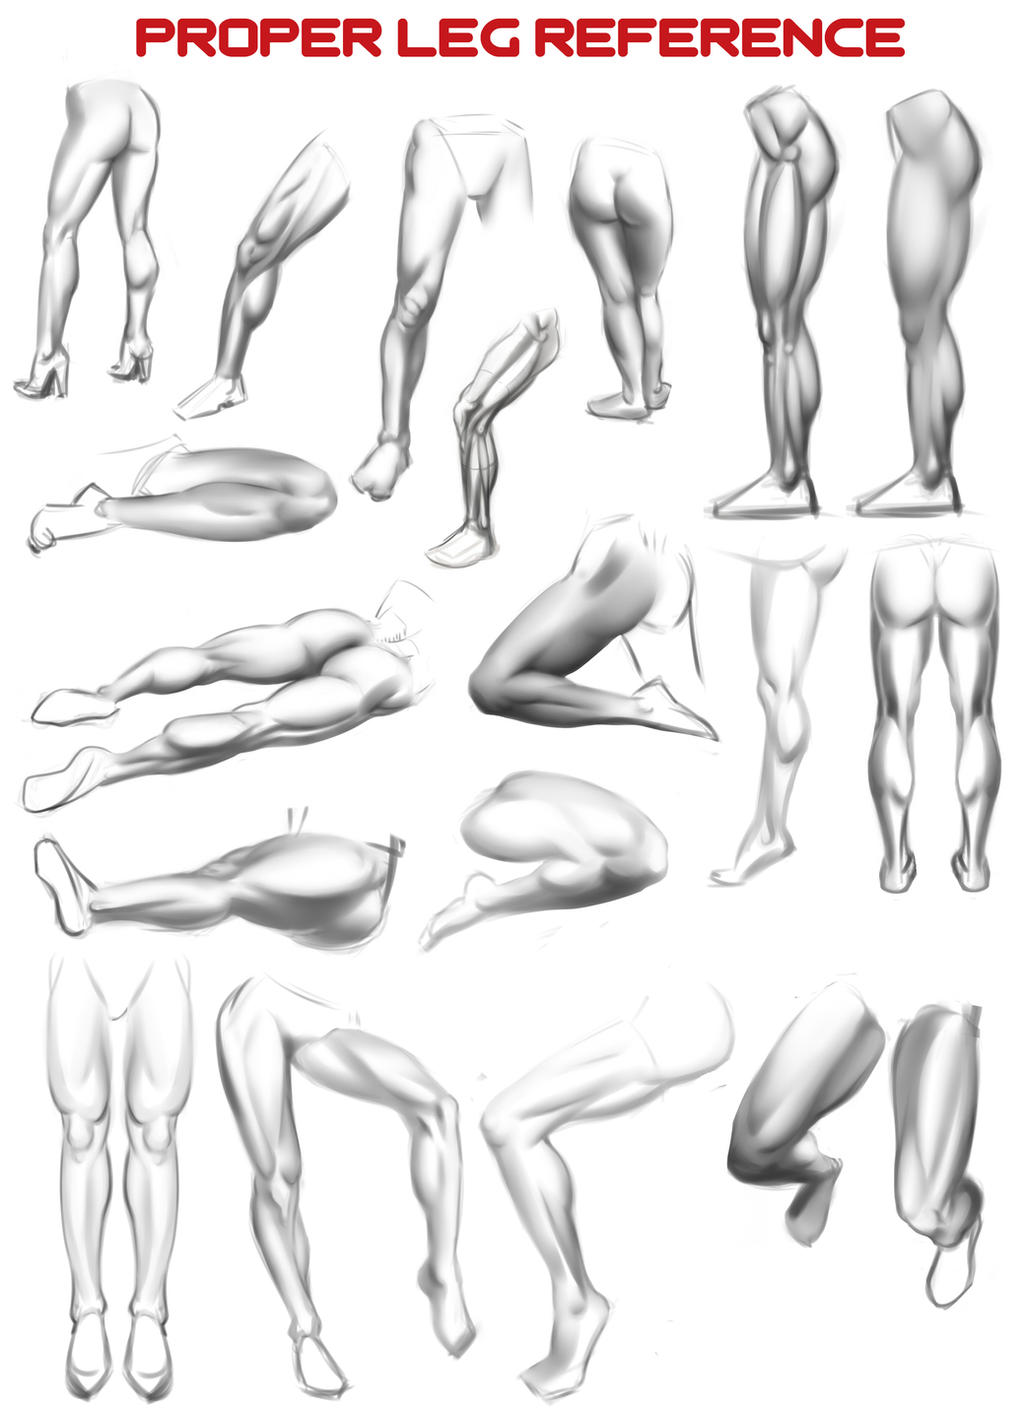 Proper Leg Reference by N3M0S1S